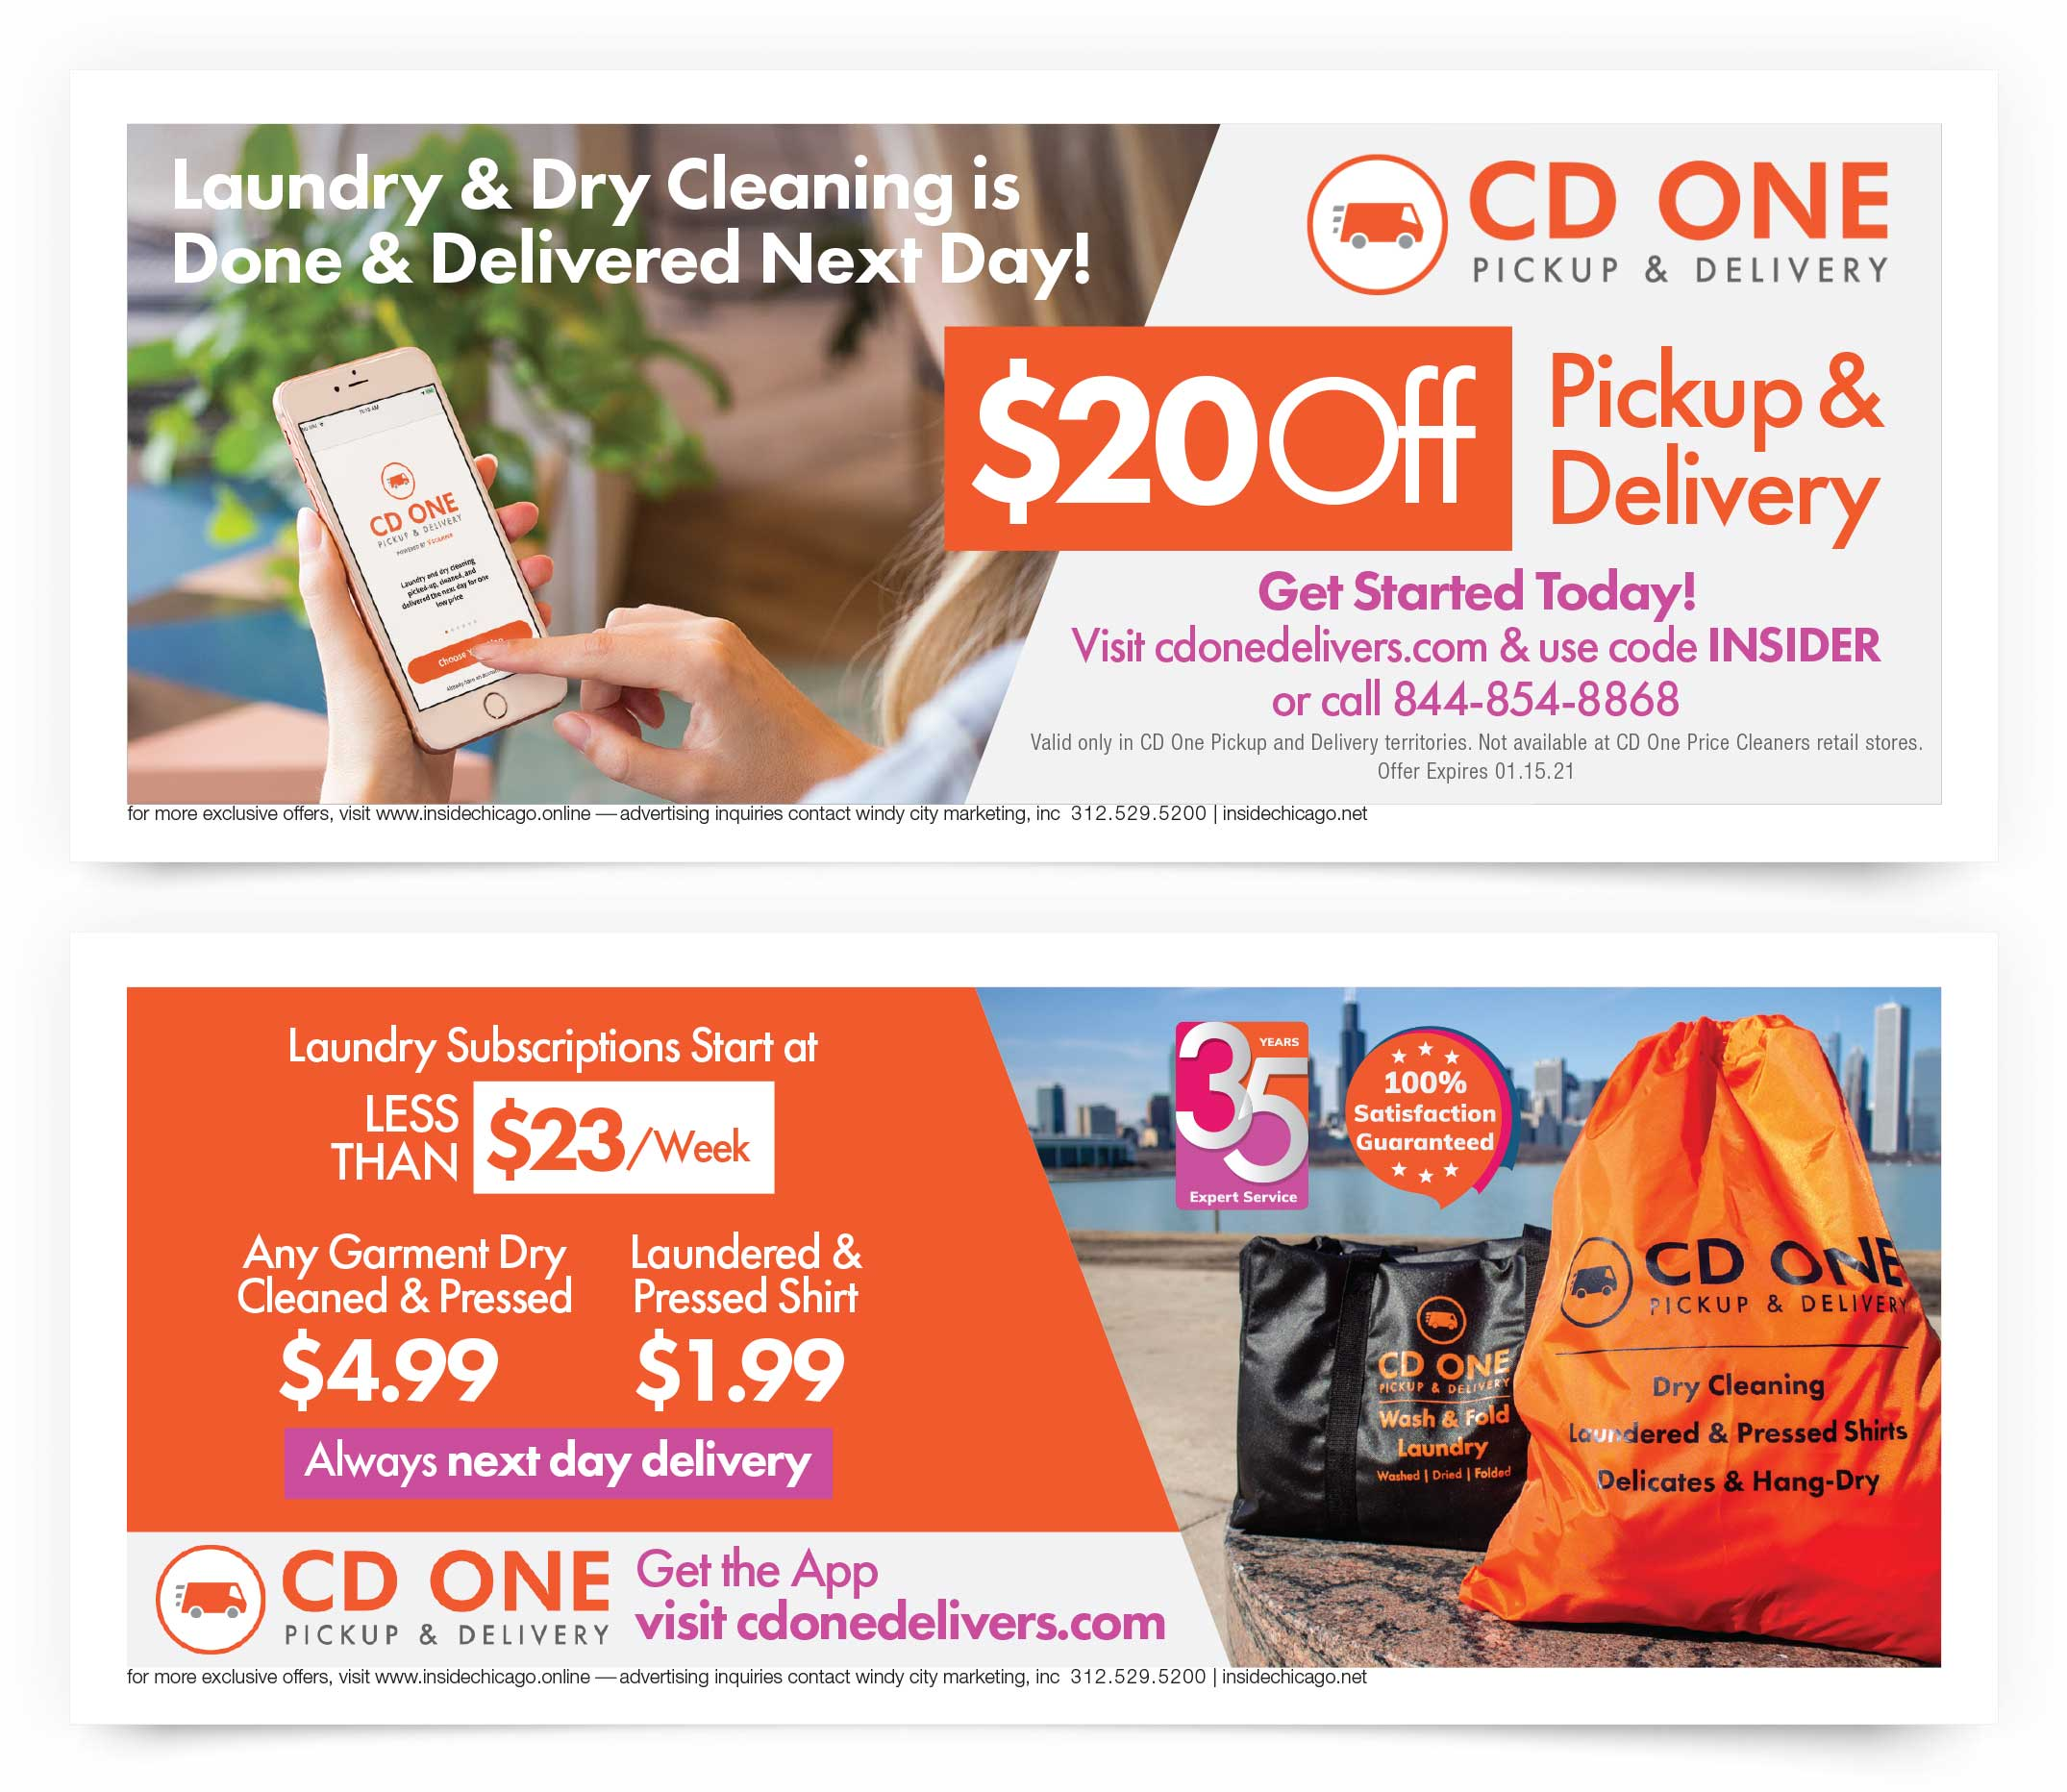 CD One Price Cleaners Chicago Coupons